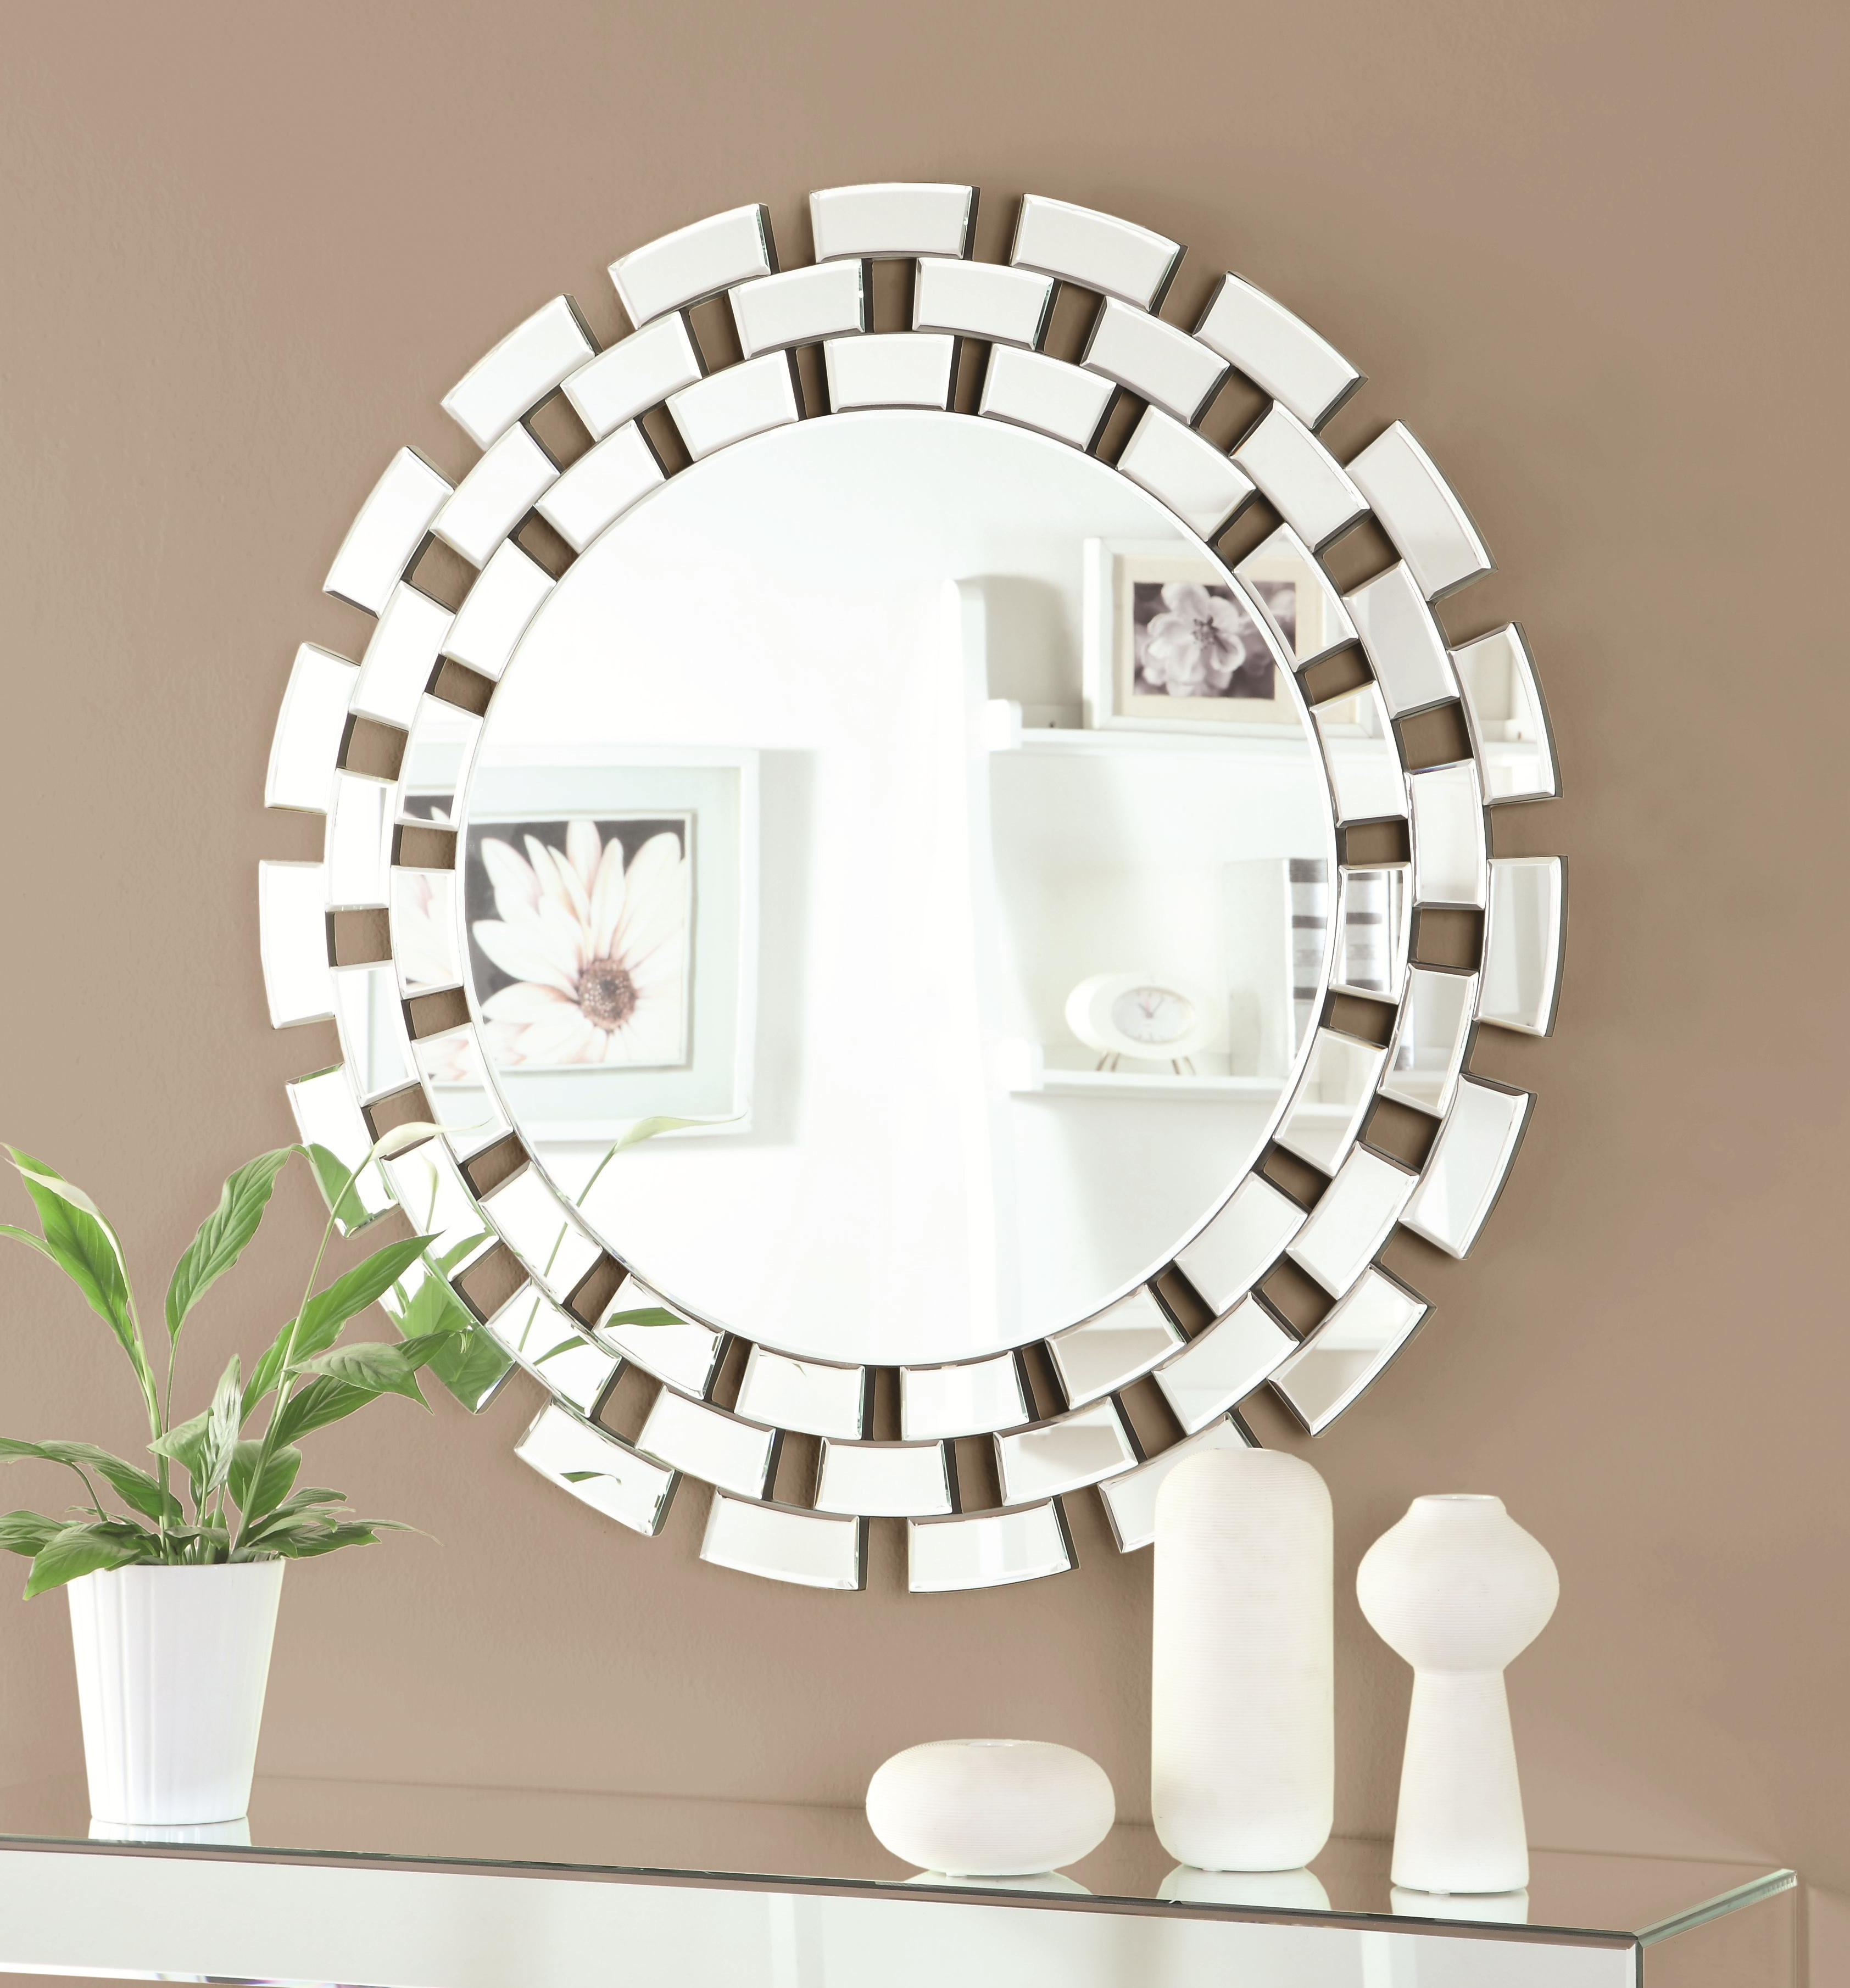 Accent Mirrors Round Wall Mirror With Geometric Frame Pertaining To Current Geometric Wall Mirrors (View 16 of 20)